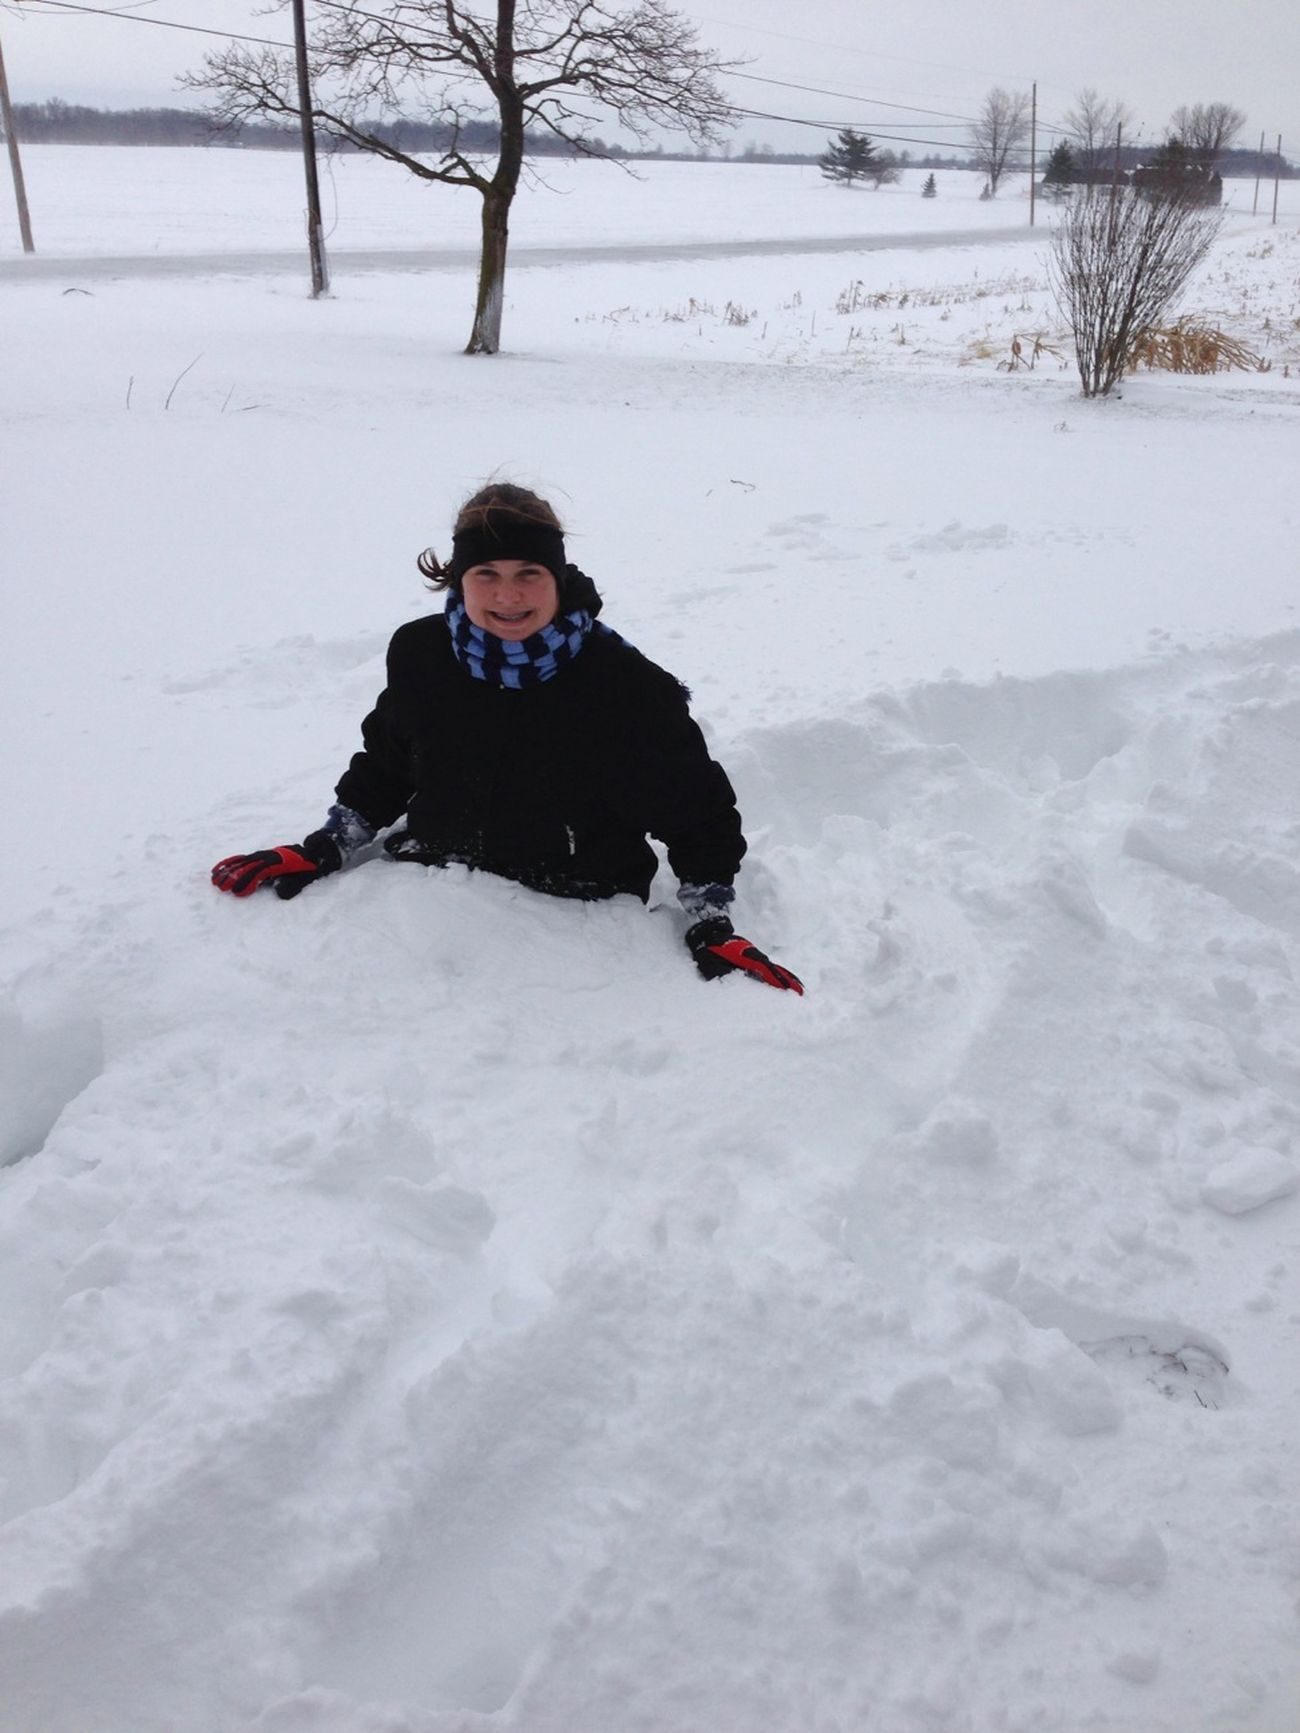 Me Buried In The Snow